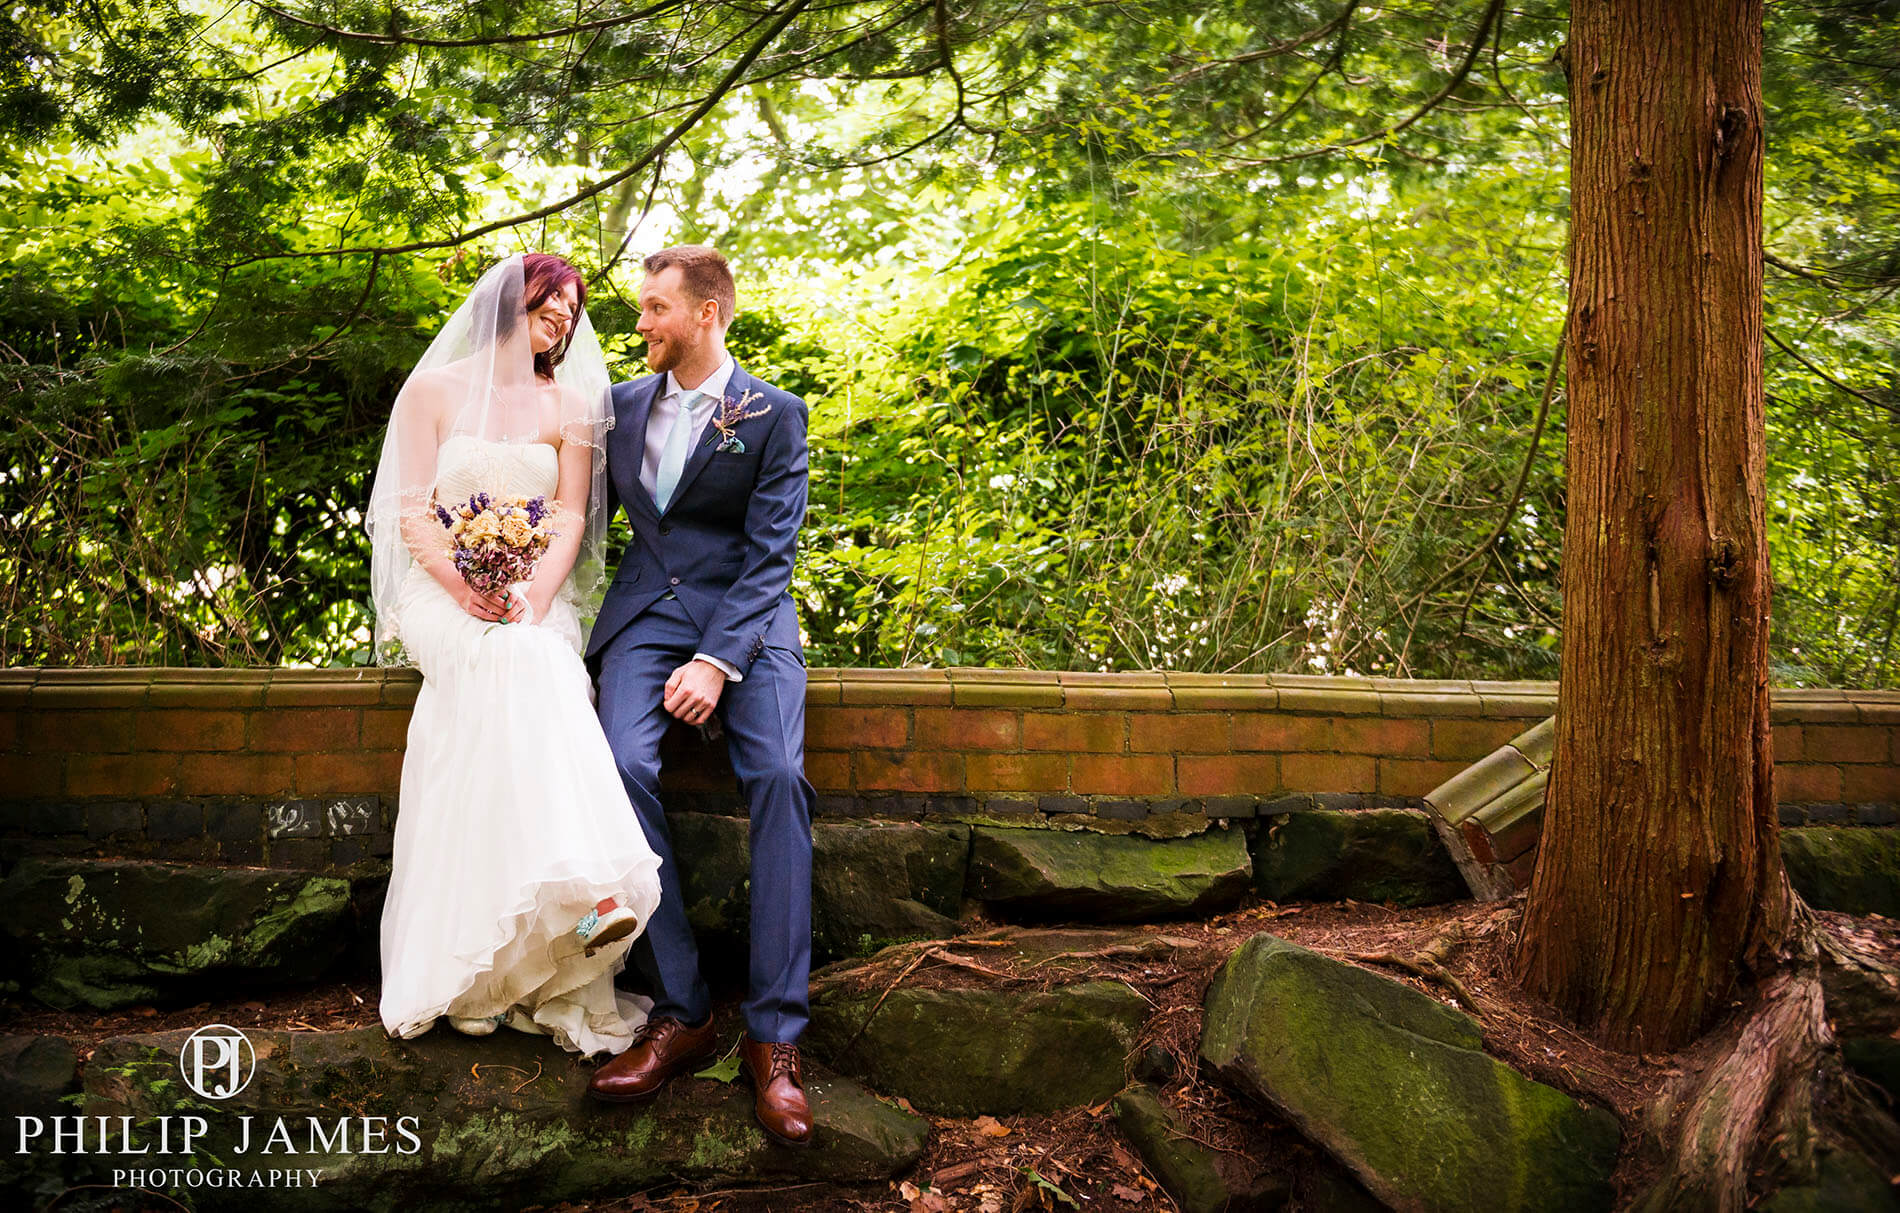 Philip James specializing in Wedding Photography Birmingham - Moments (40 of 170)